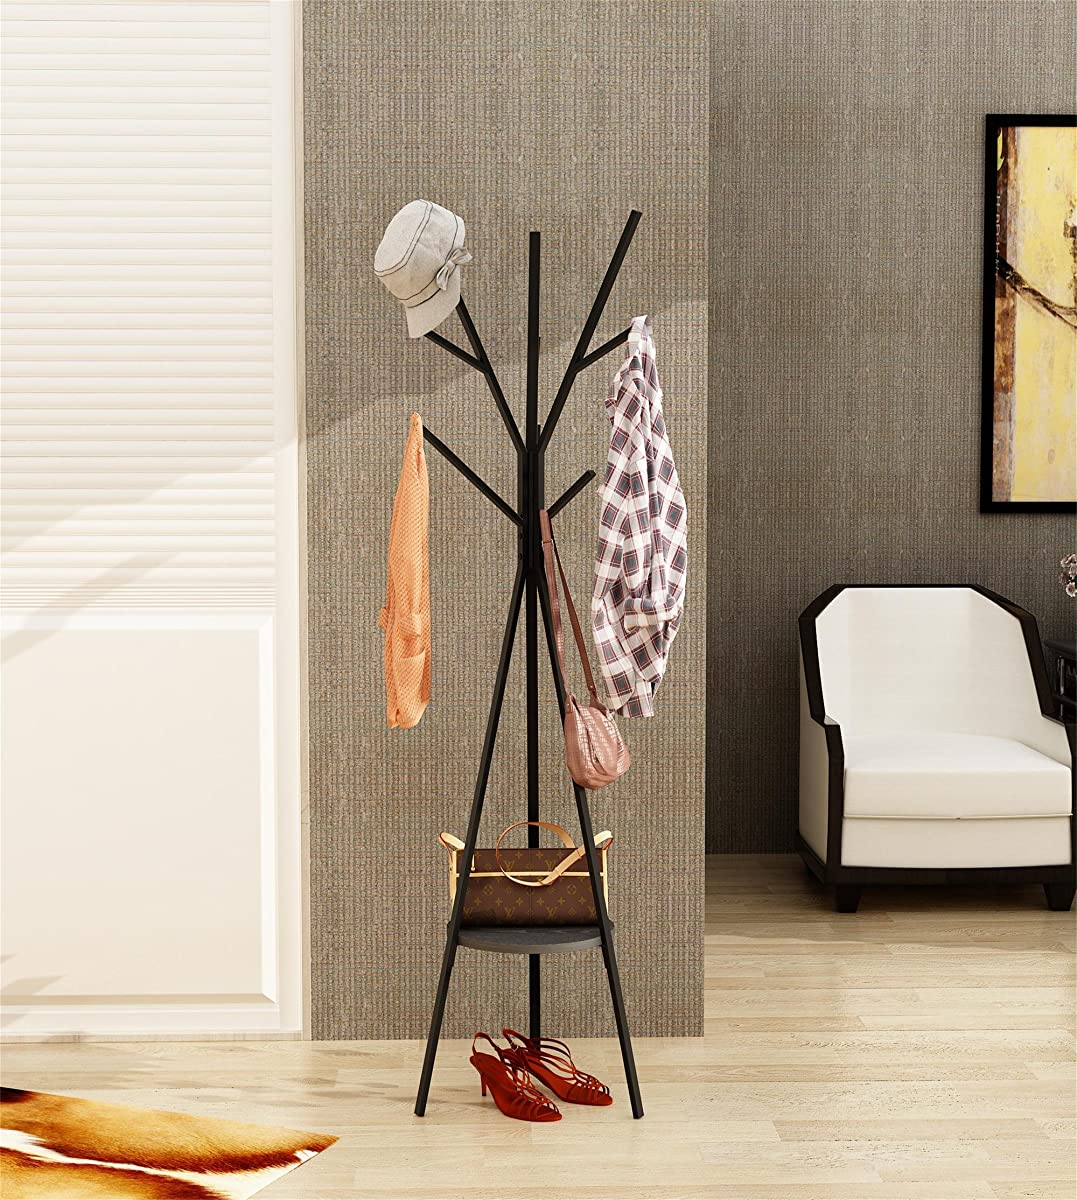 "Home-Like Metal Coat Rack Hat Hanger Holder Hall Tree Hallstand Garment Rack Clothing Rack Tree Stand Suit for Bedroom Office Hallway Entryway (70.87"" H -Black)"